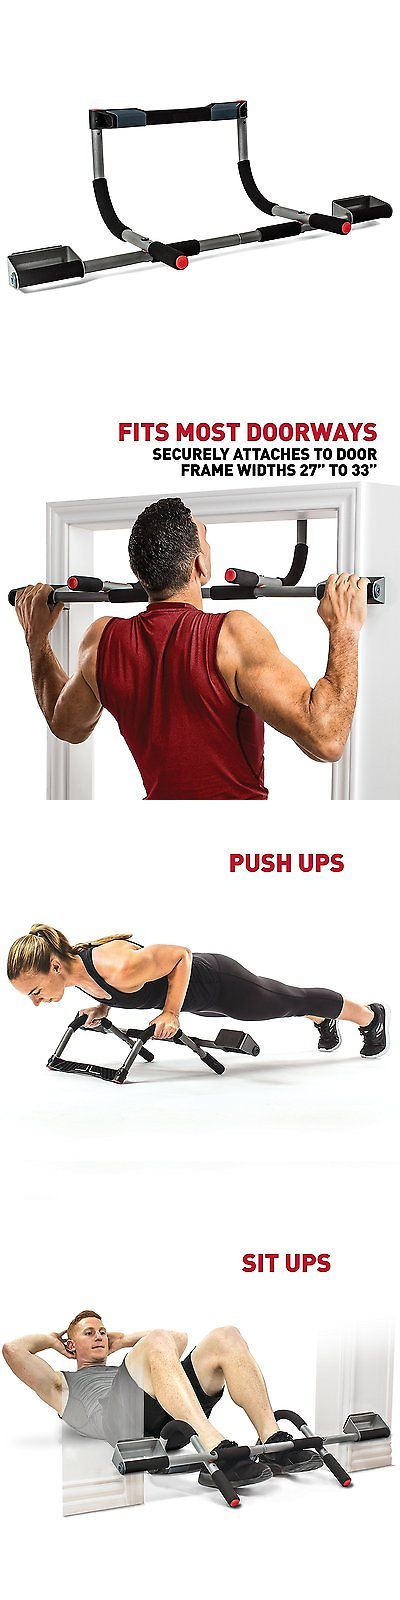 Pull Up Bars 179816: Pull Up Bar Doorway Gym Chin Trainer Home Multi Grip Heavy Duty Workout Fitness -> BUY IT NOW ONLY: $55.56 on eBay!